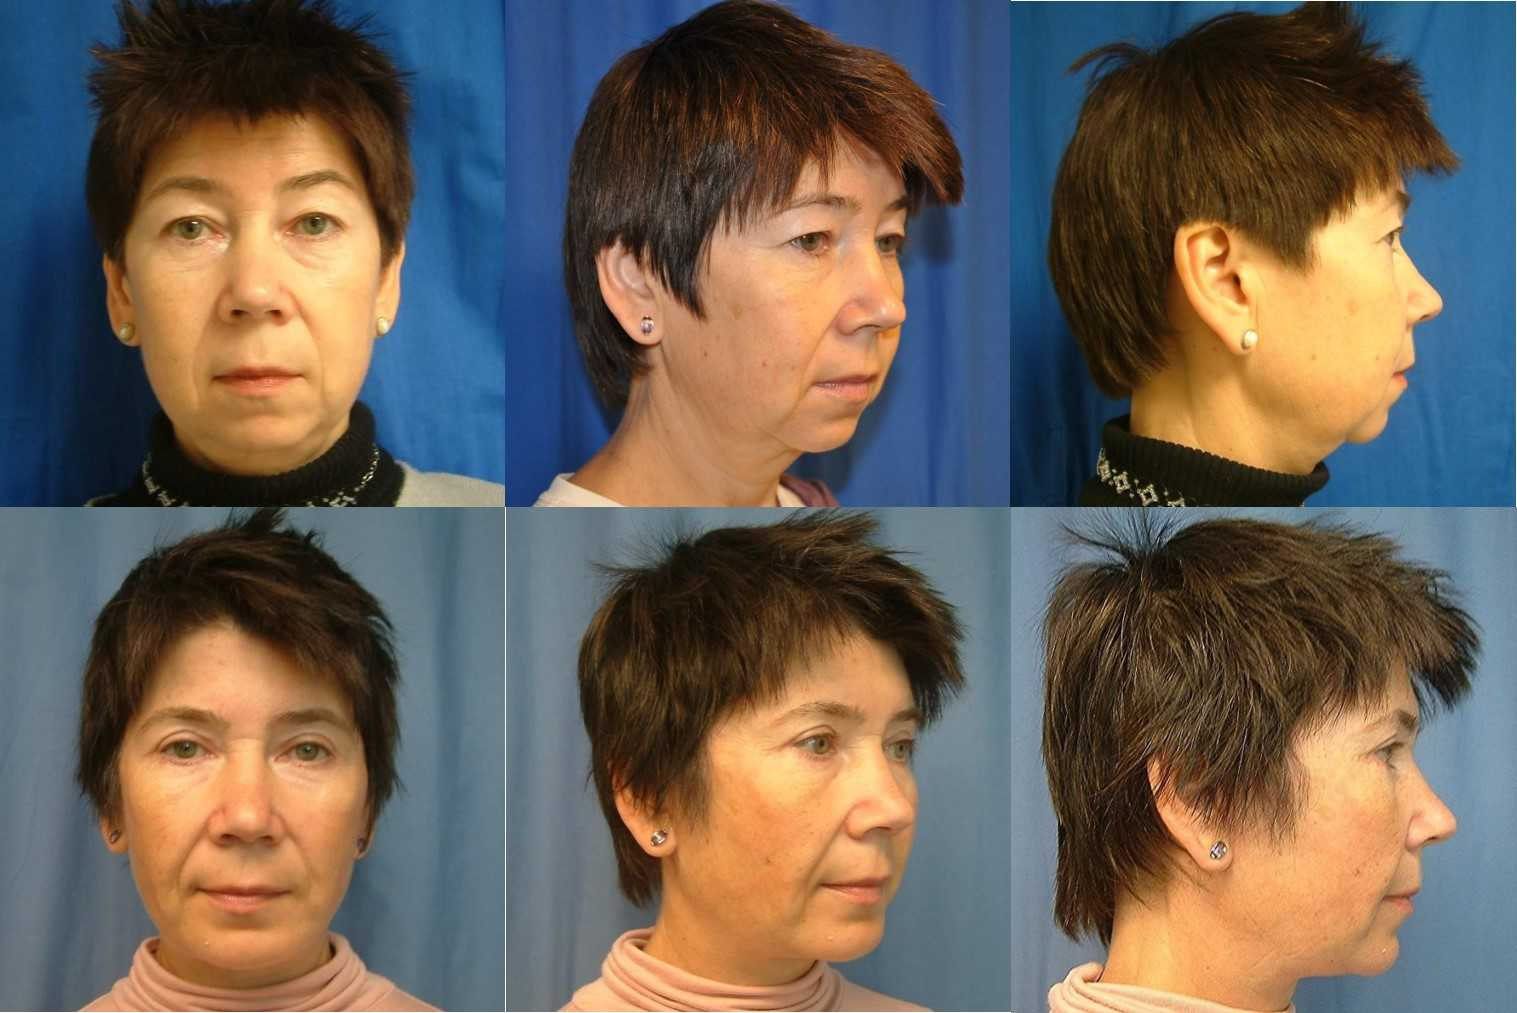 Facelift Before and After with Chin Augmentation and Eyelid Surgery